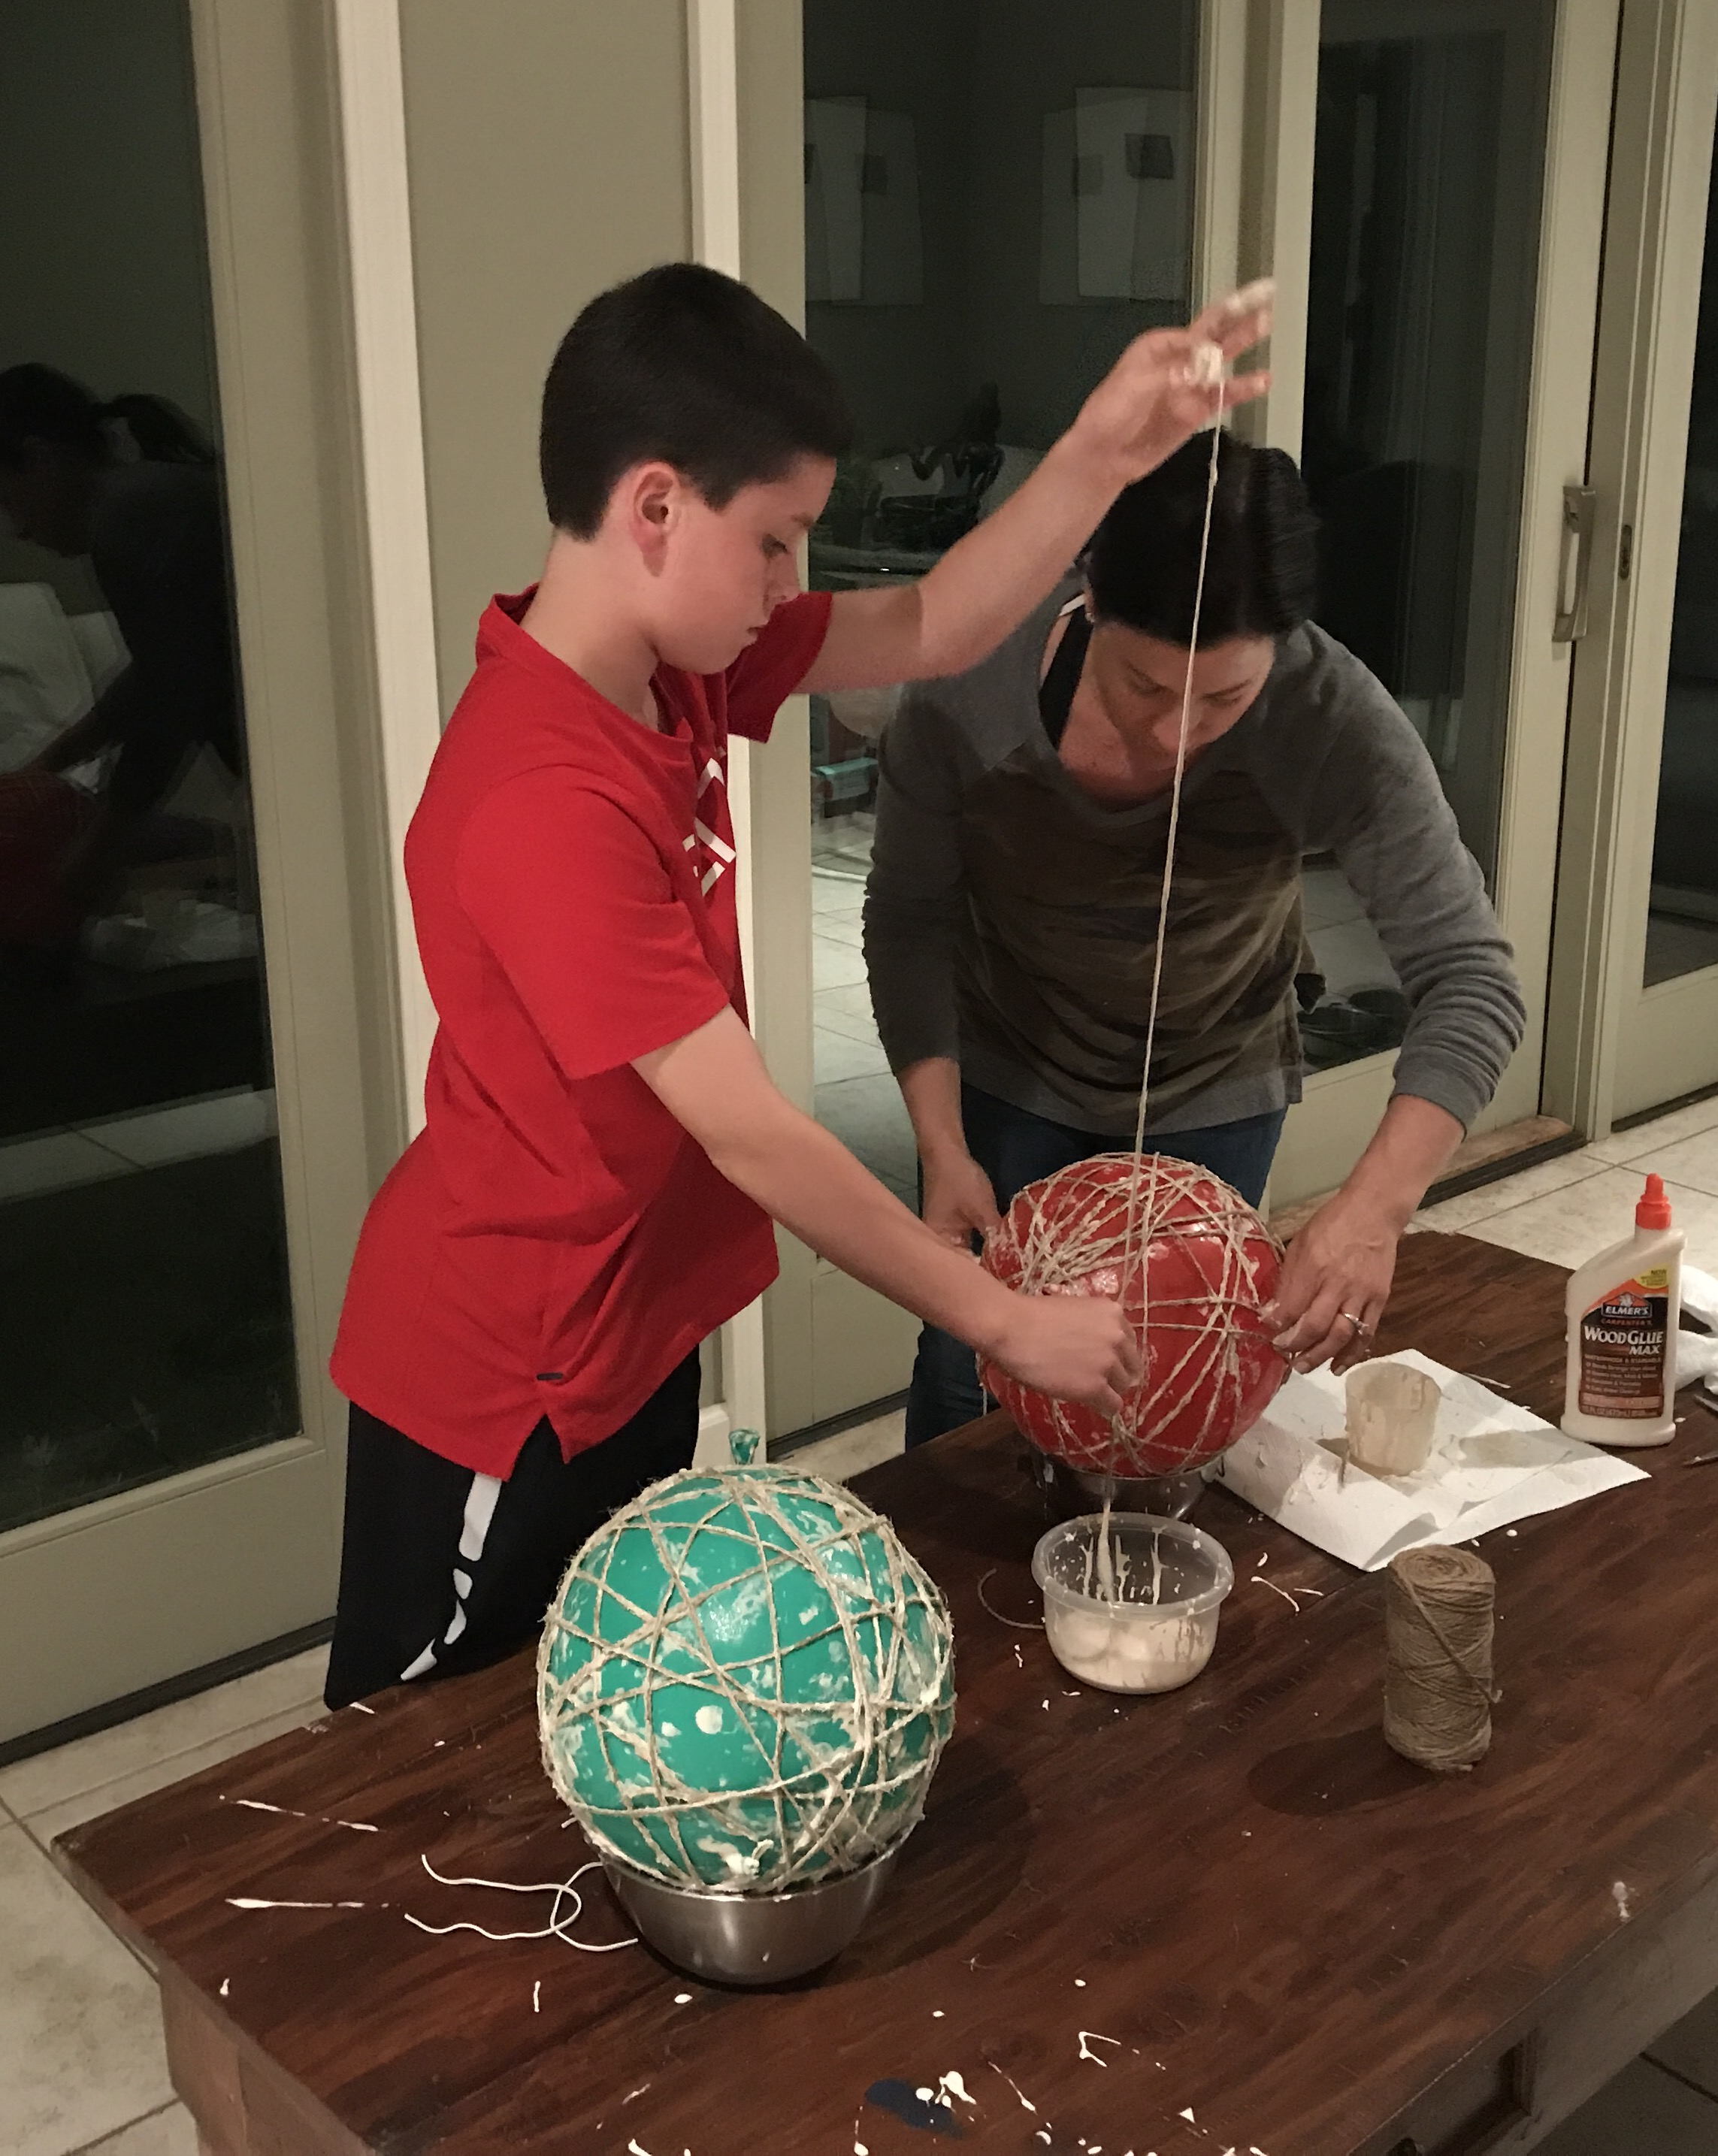 Follow steps below:   Wrap the ball with twine dipped in glue (you can use rubber gloves here). I like to cut the twine into 4' pieces because it's easier to wrap around the balloon without getting tangled.